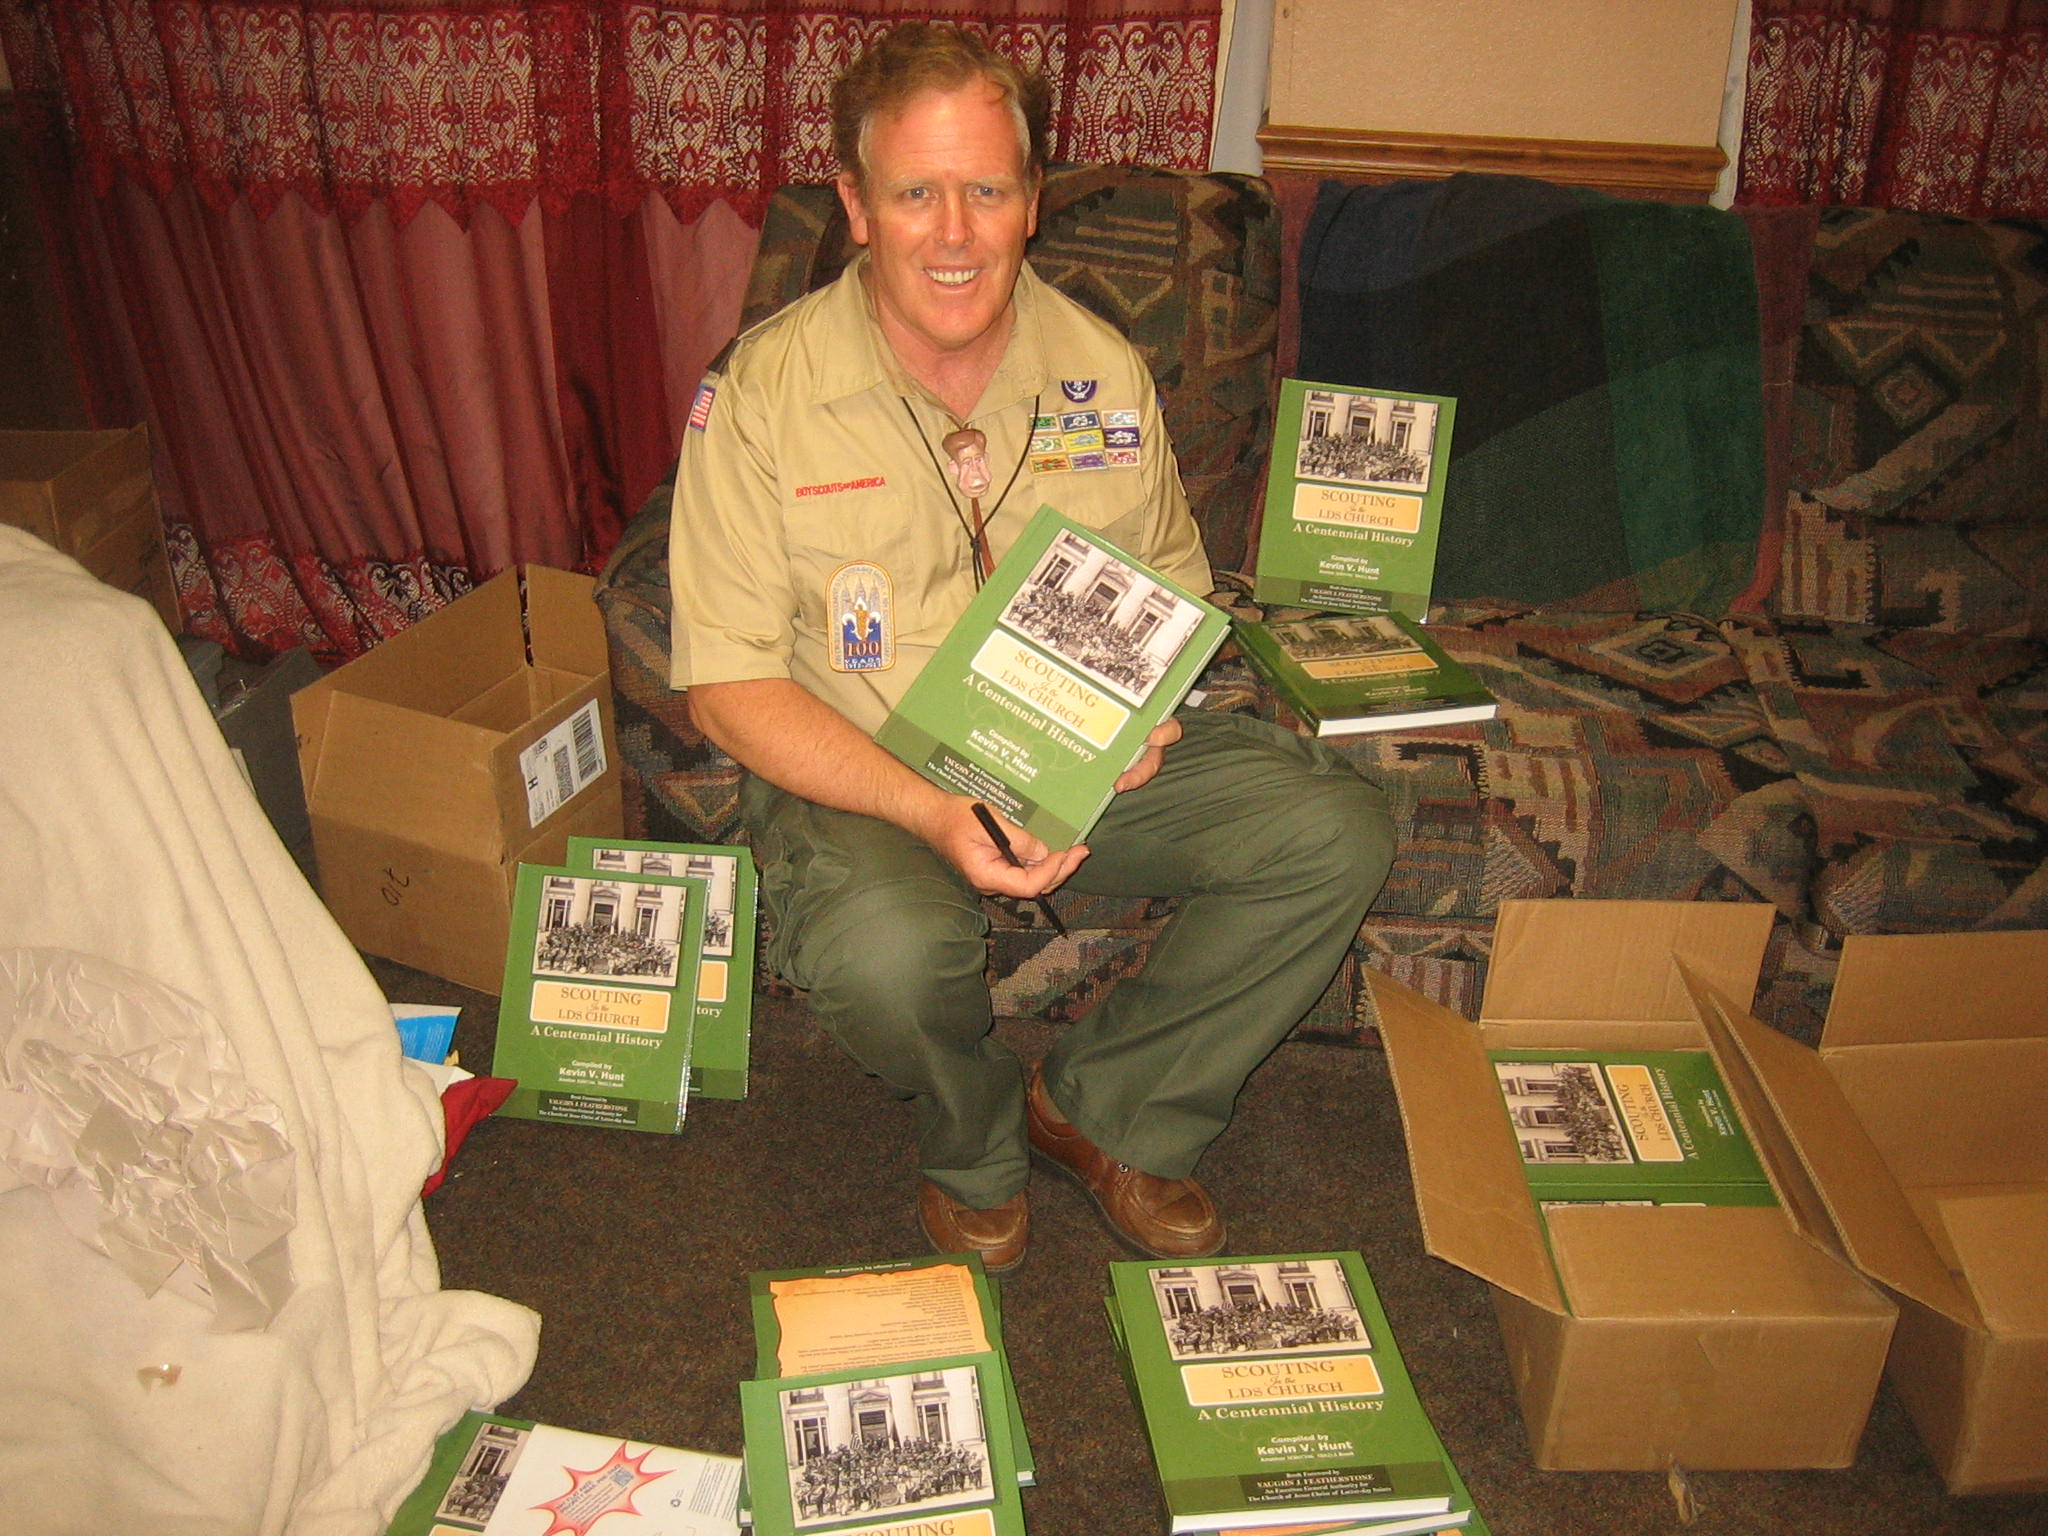 Mesa Man's Book Chronicles 100 Years Of Scouting In The LDS Church